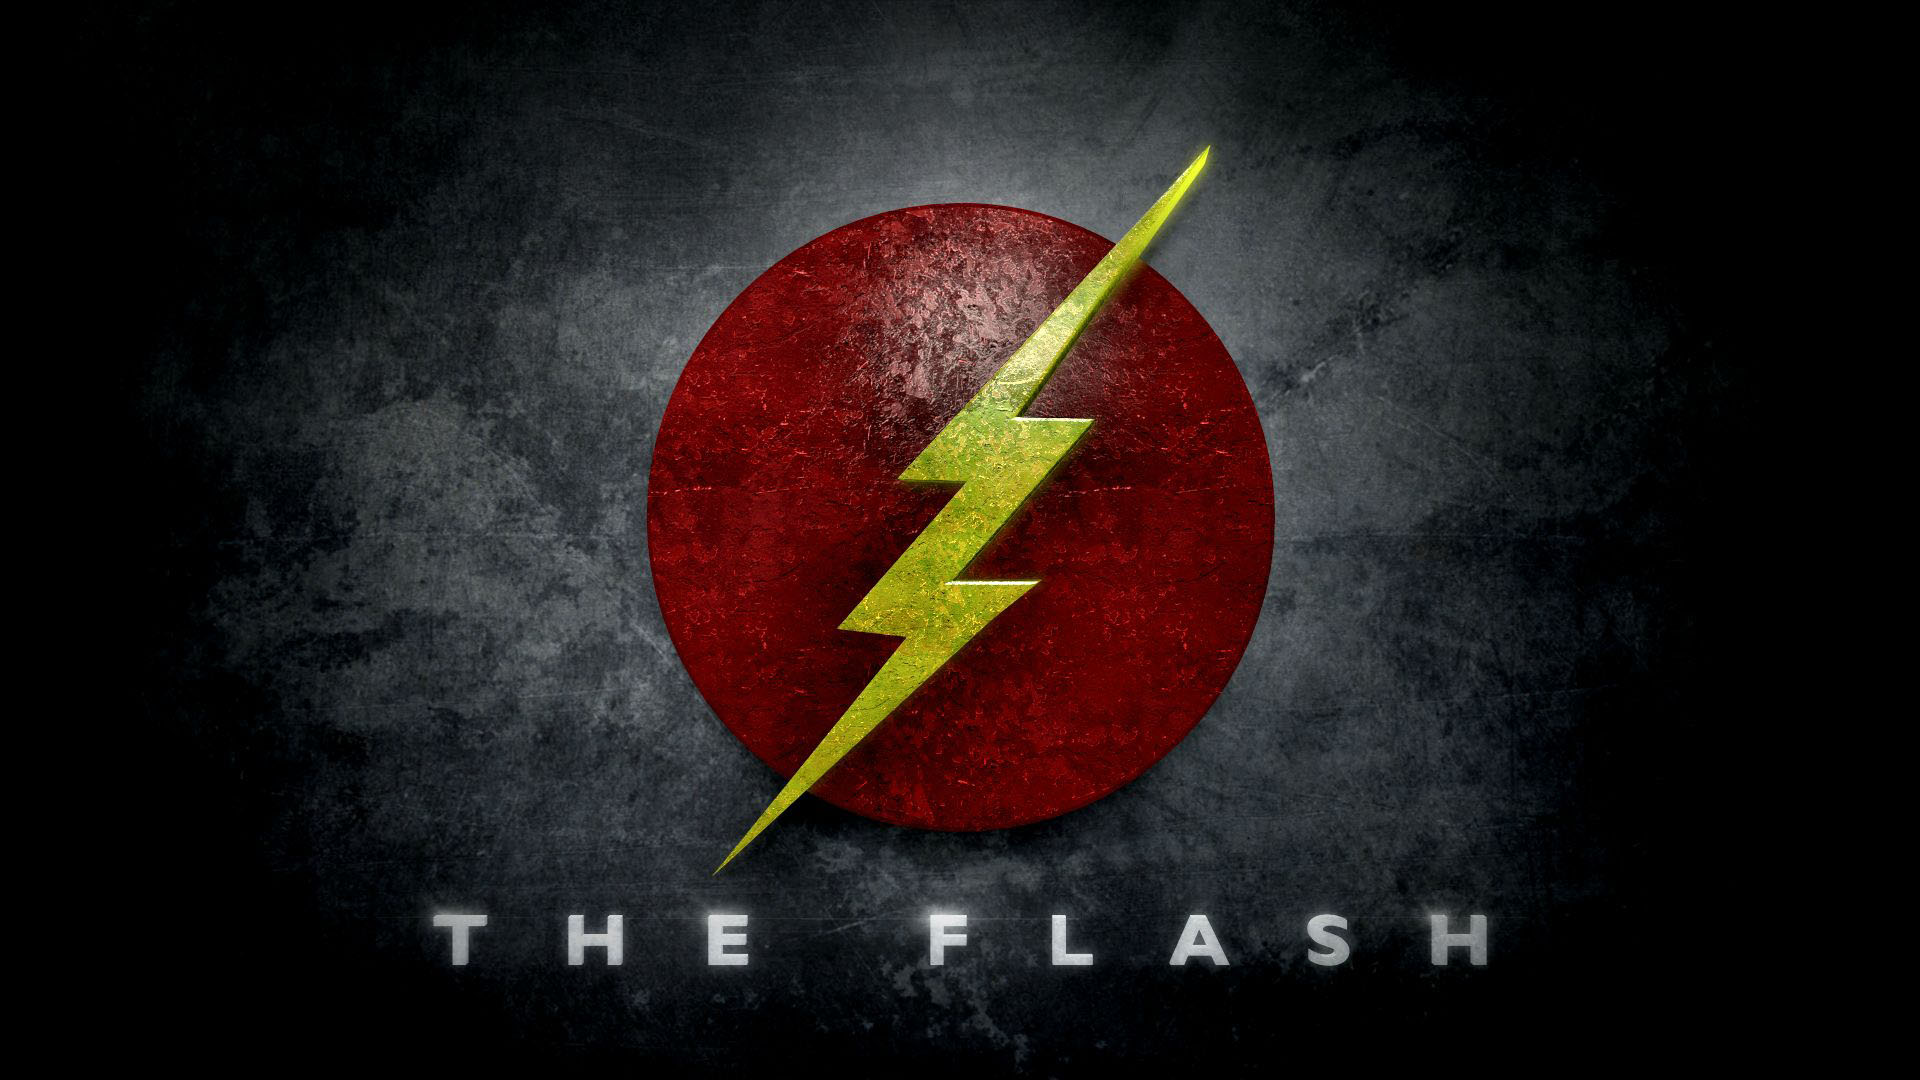 9+ The Flash logo HD wallpapers free download